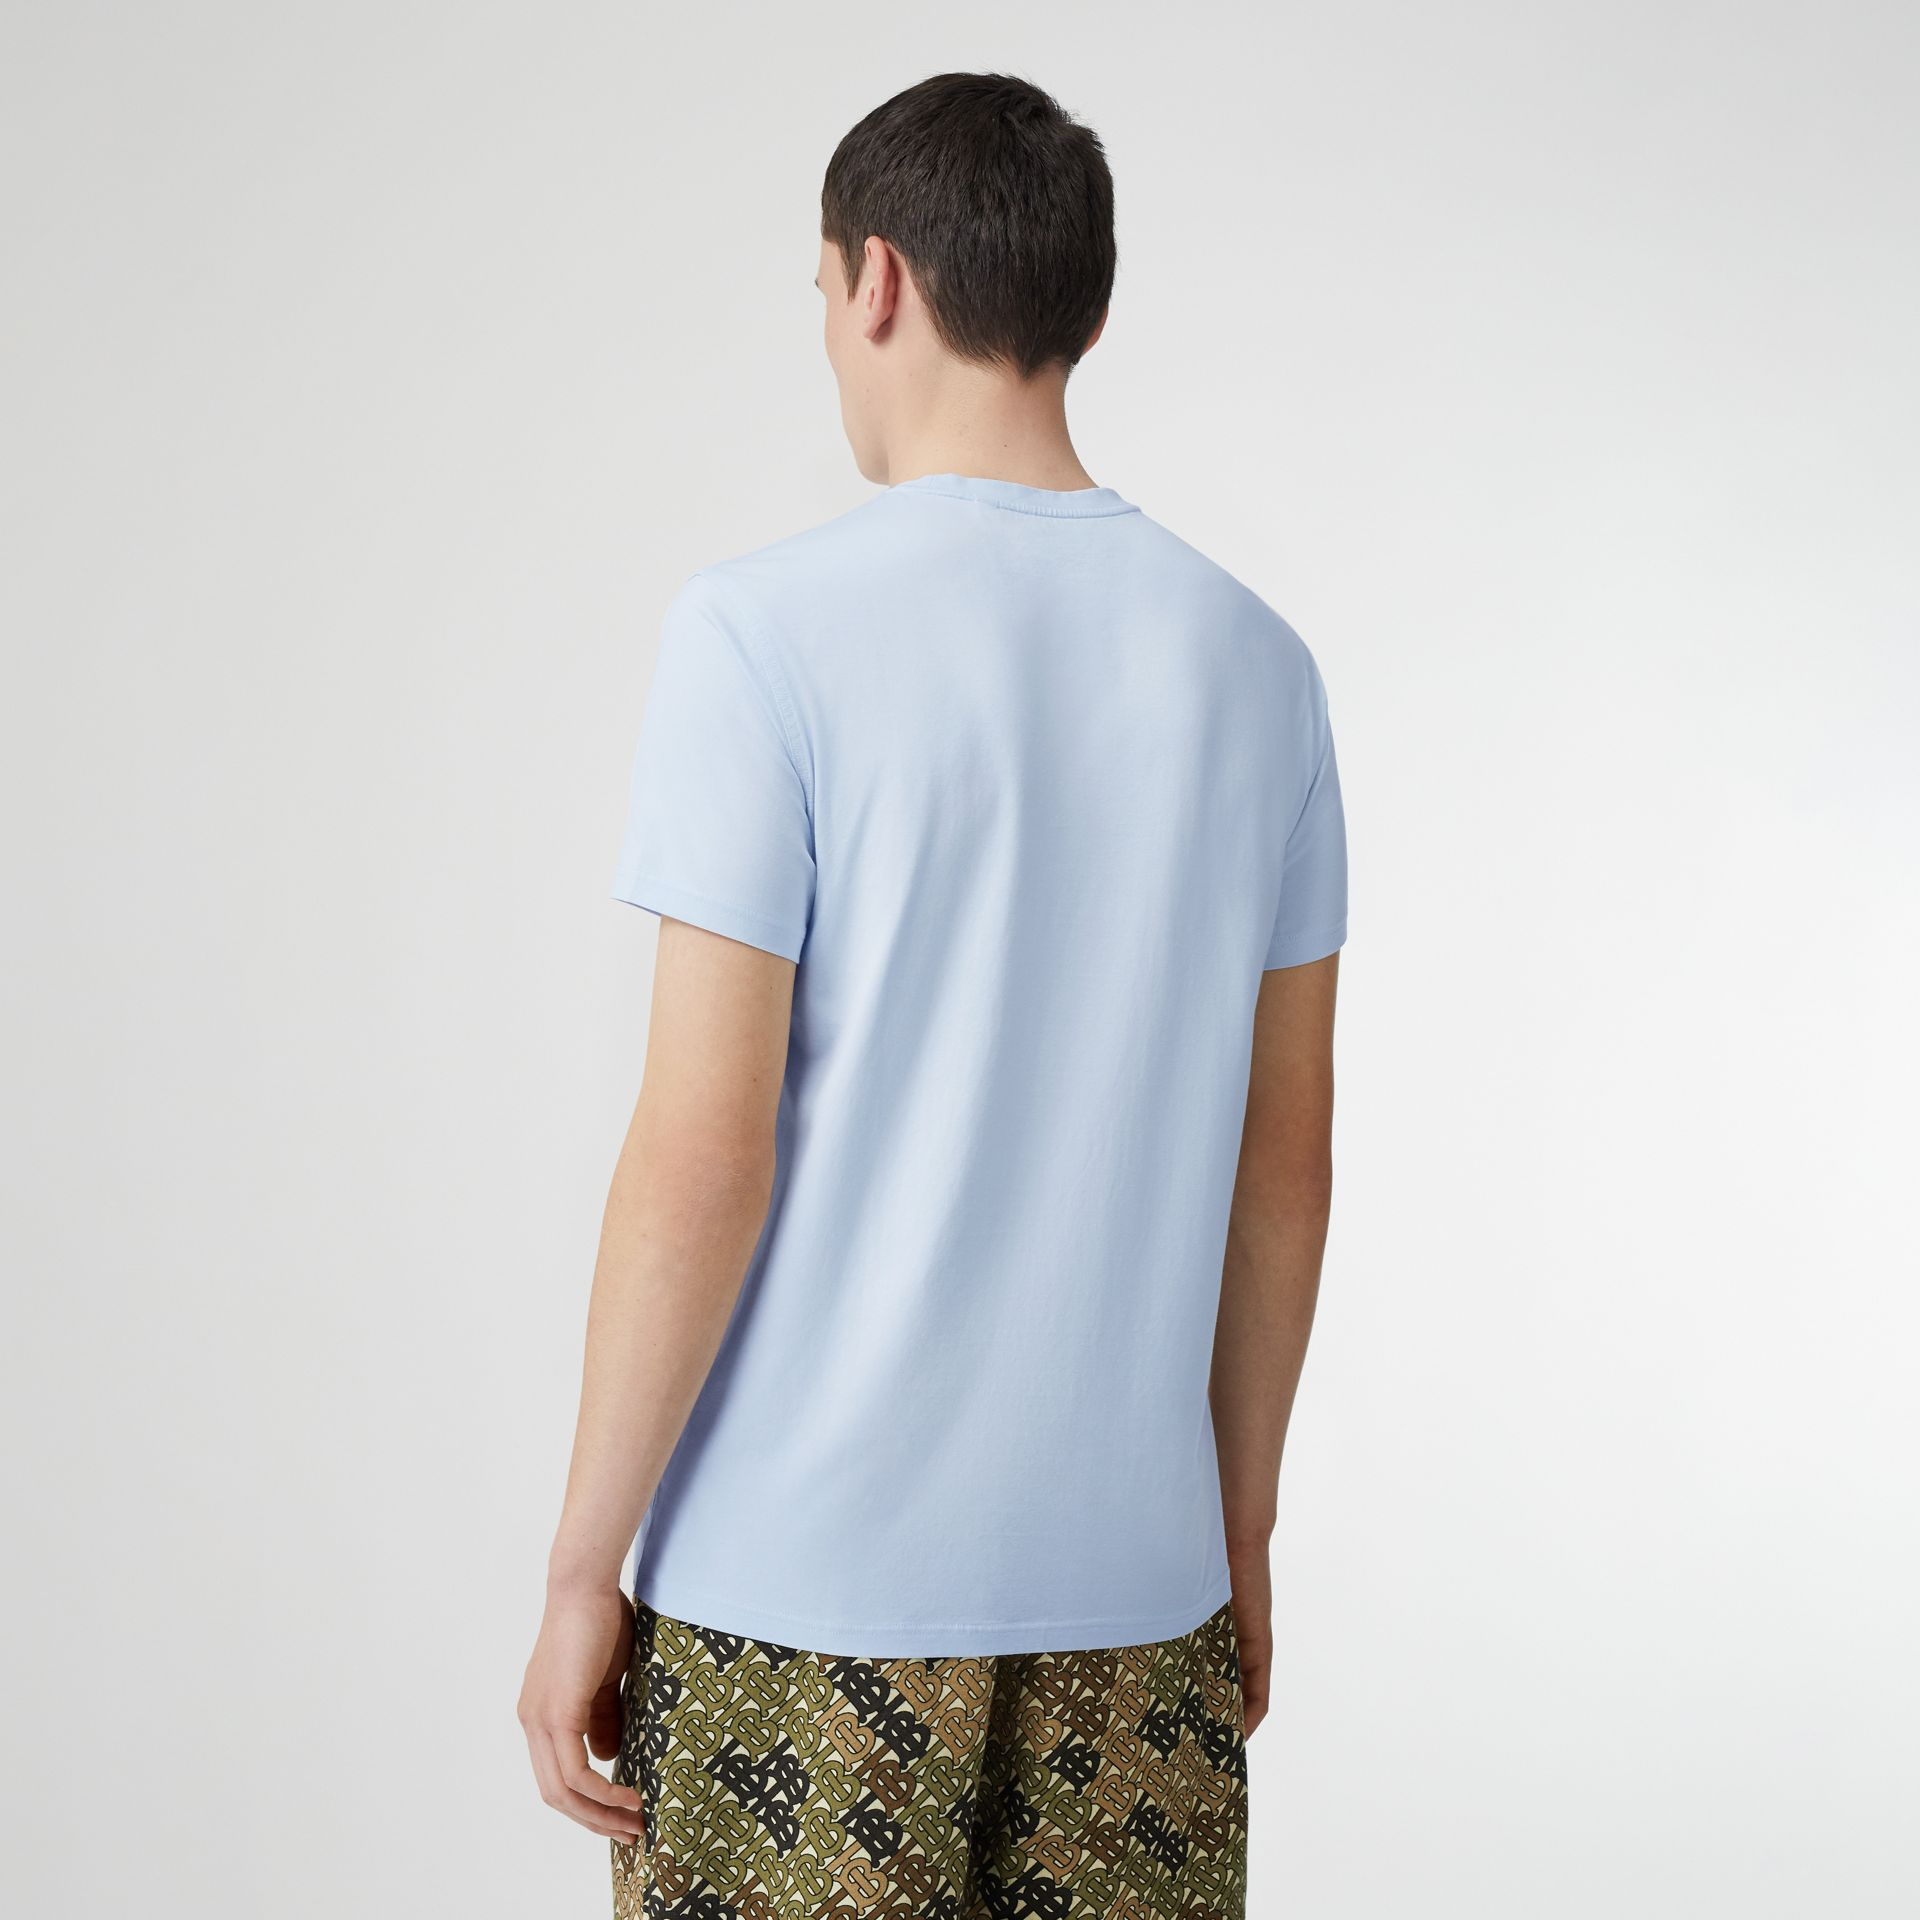 Monogram Motif Cotton T-shirt in Pale Blue - Men | Burberry - gallery image 2